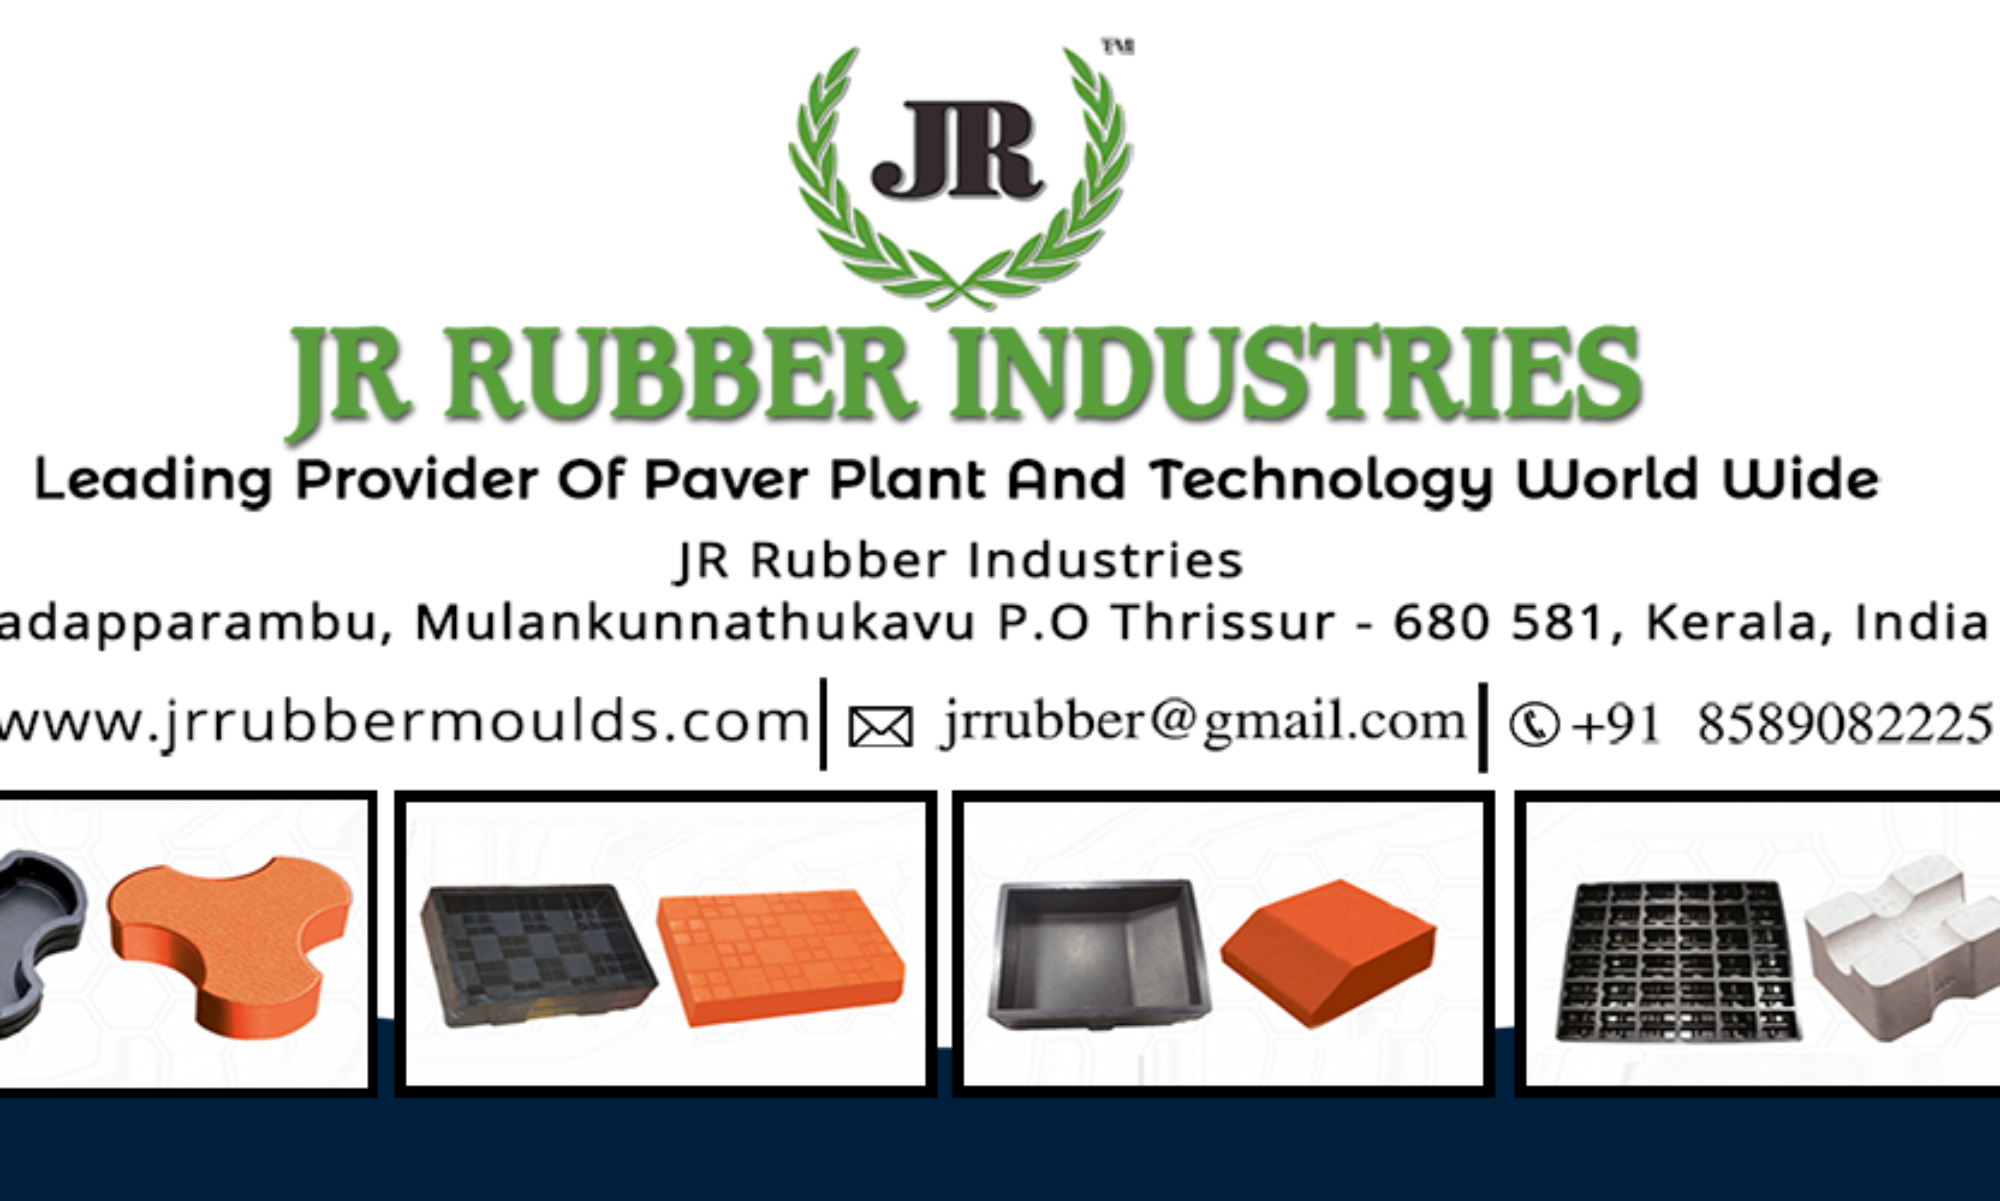 JR Rubber Industries